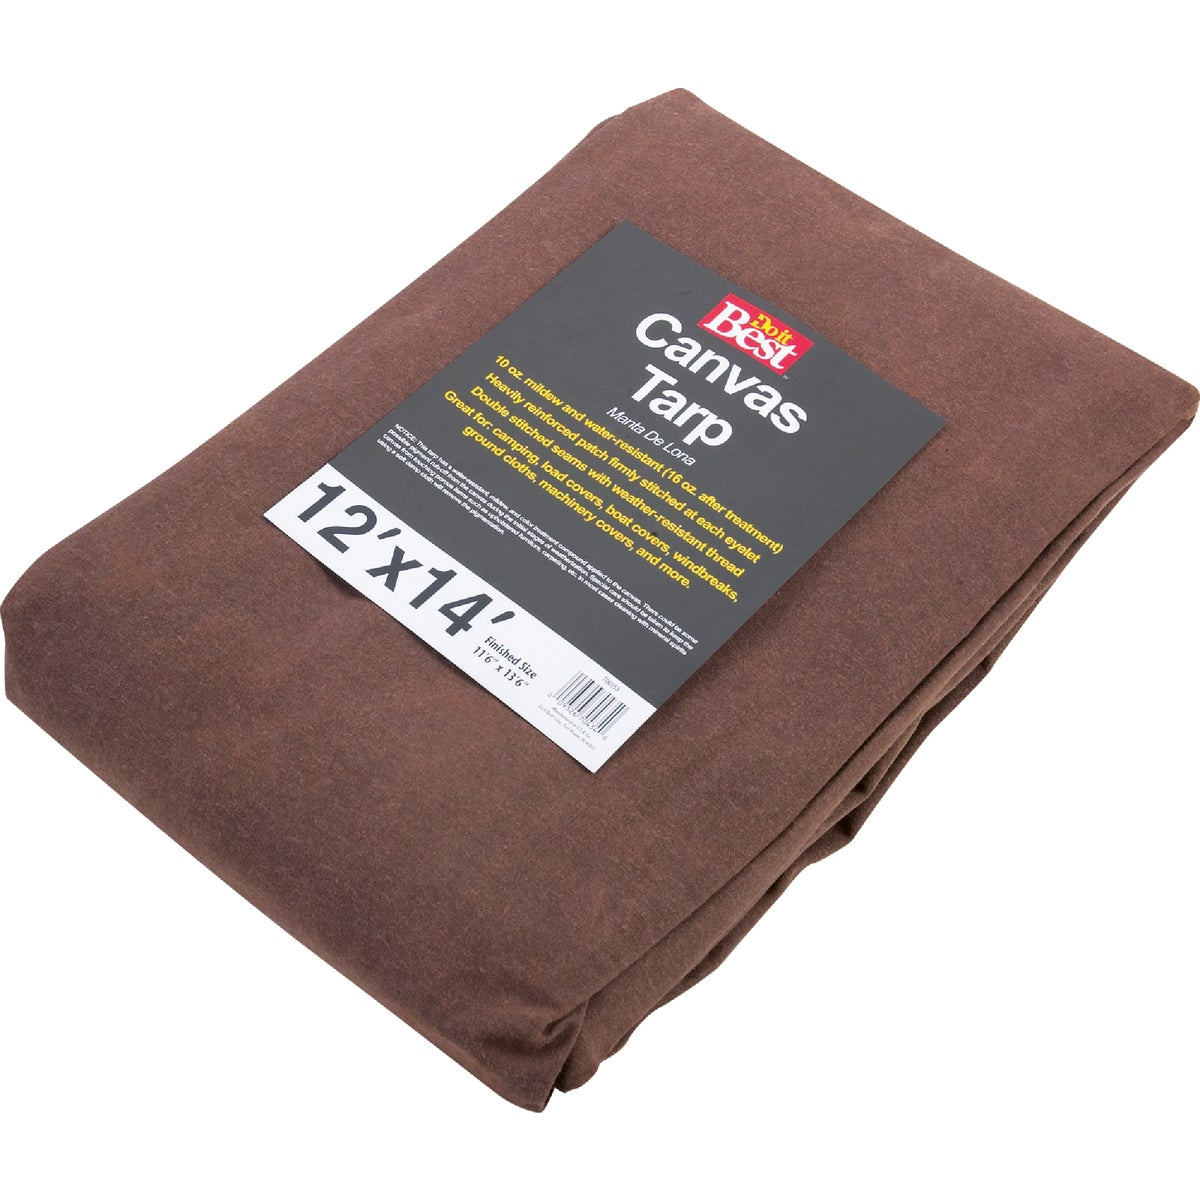 12X14-10OZ CANVAS TARP - TCR10012014T by Gosport Mfg Co